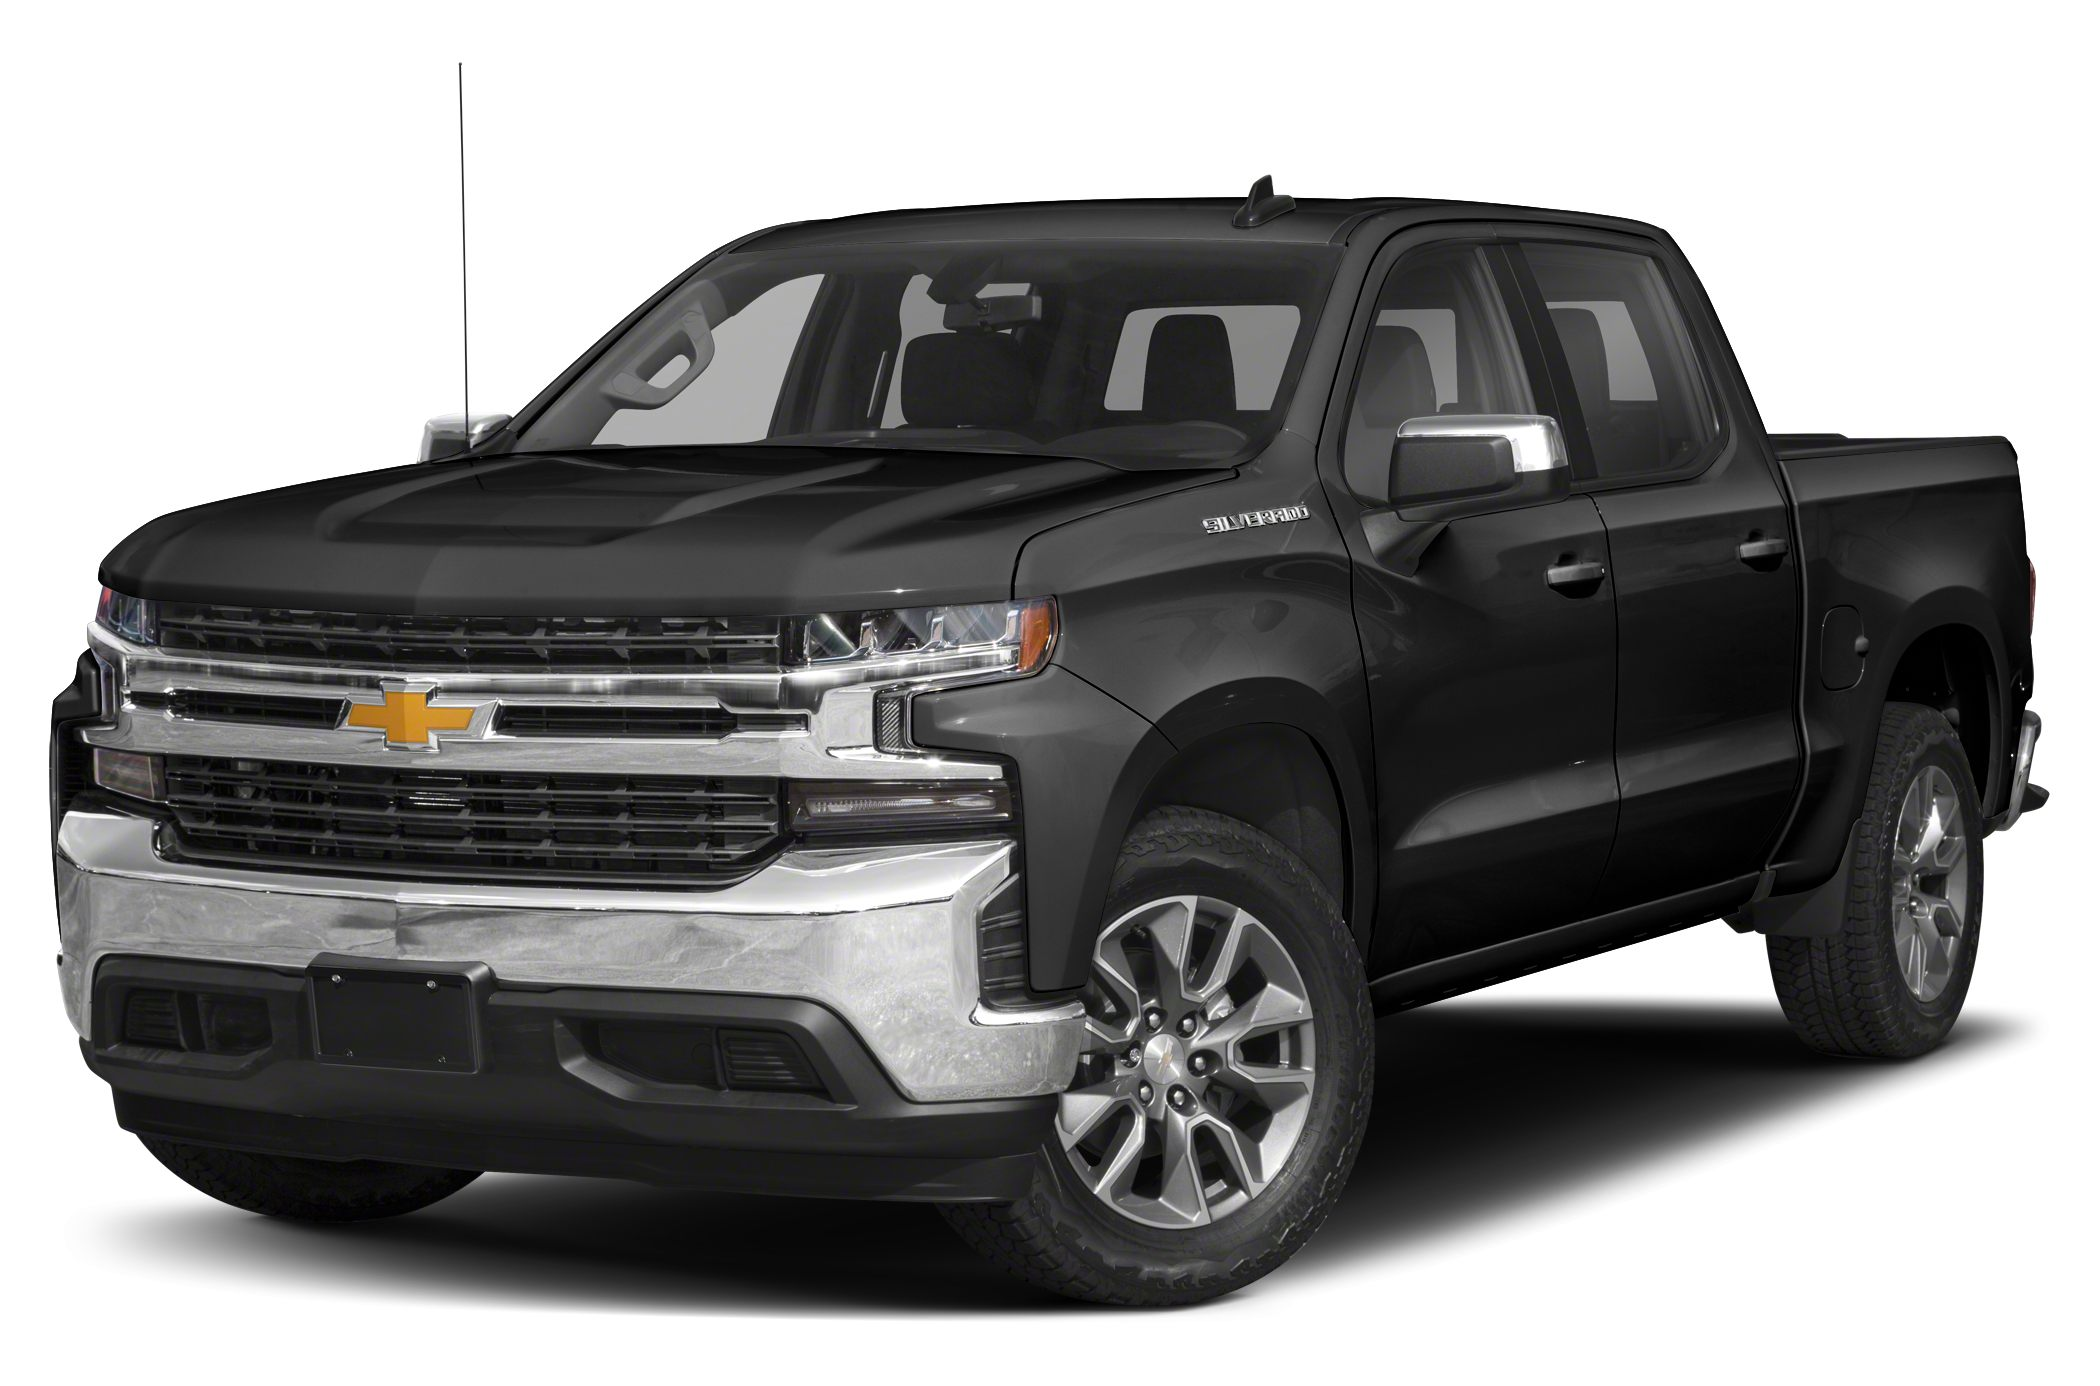 2019 Chevrolet Silverado 1500 Deals, Prices, Incentives ...